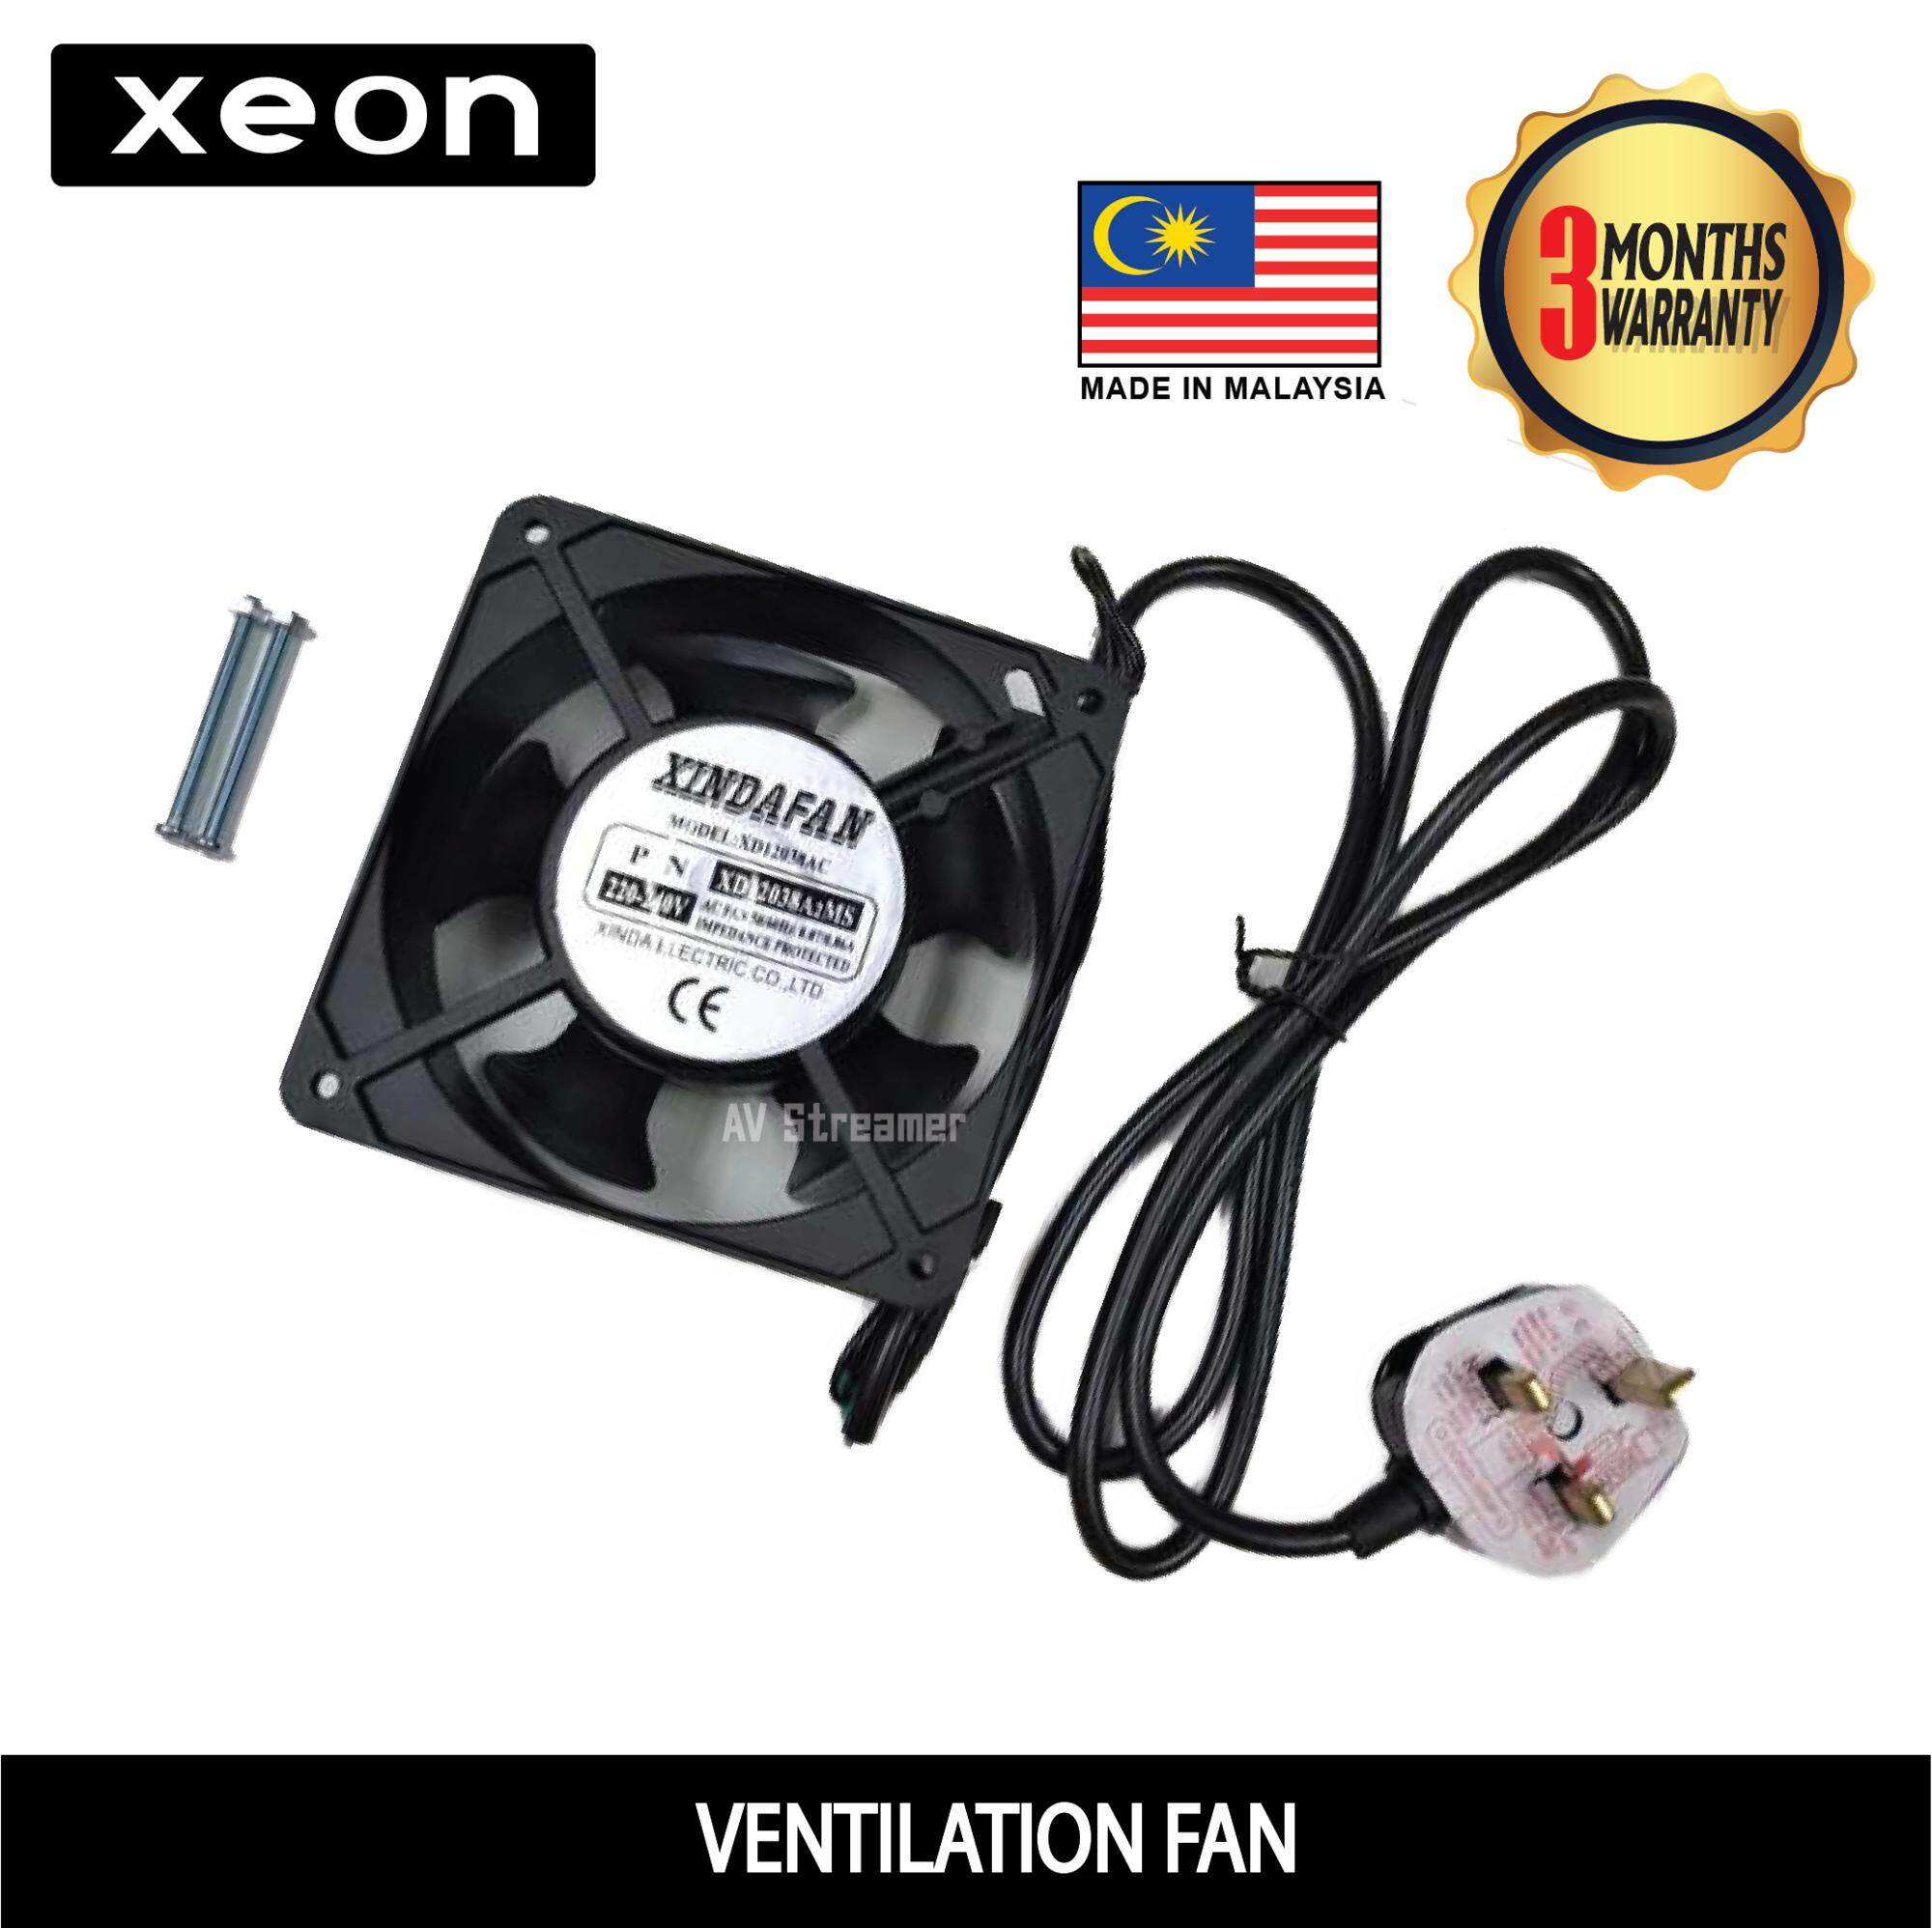 Ventilation Fan For Server Rack & Wall Mount Rack (Heavy Duty) Malaysia